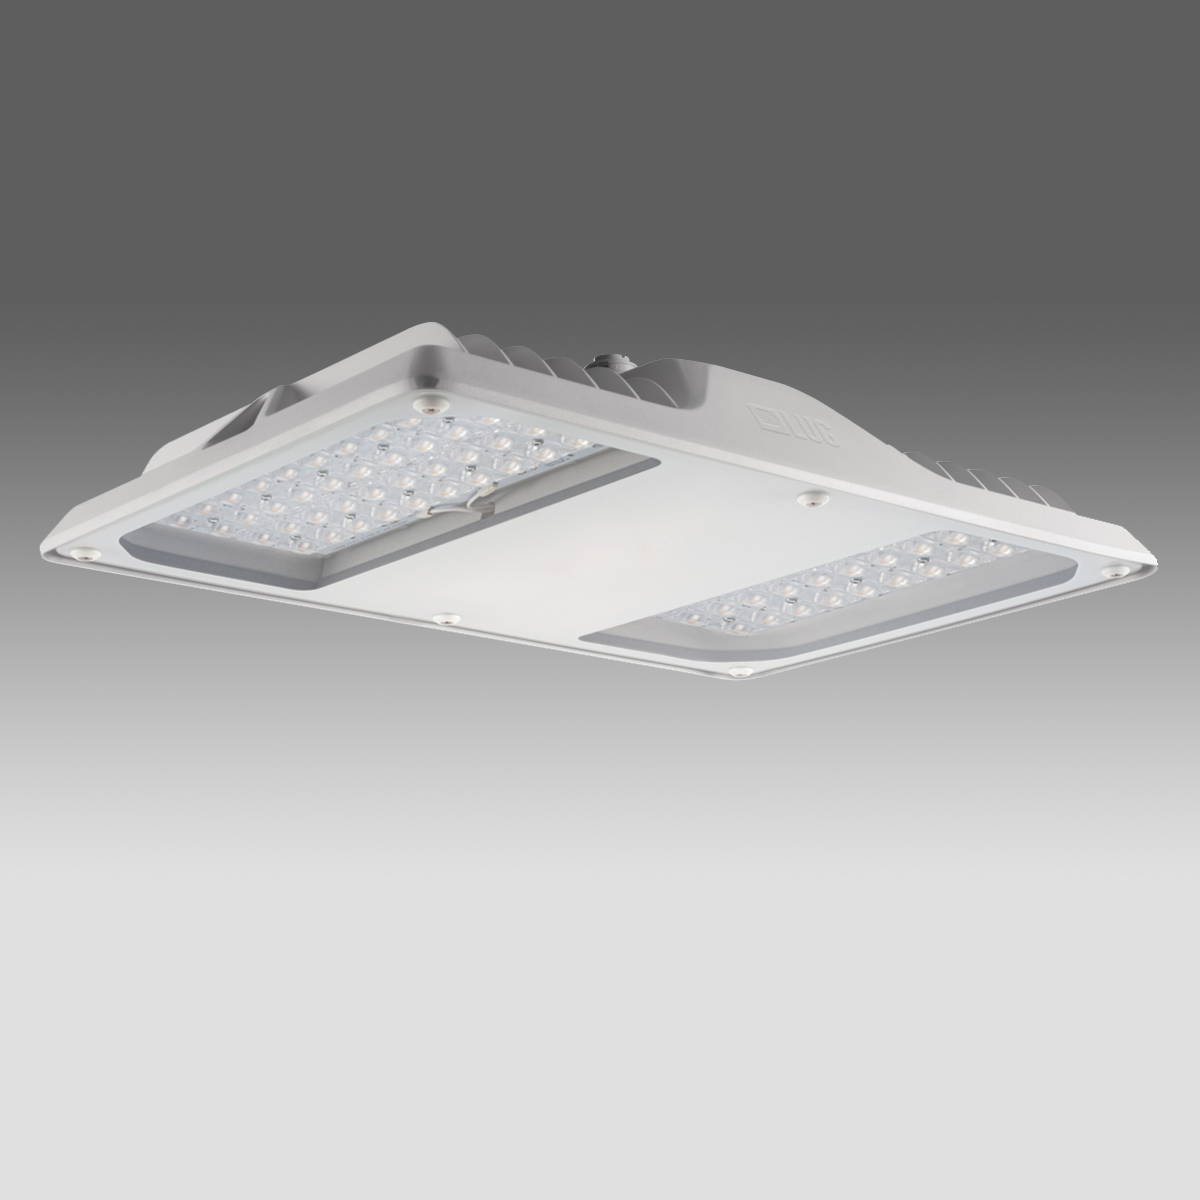 1 Stk Arktur Square PLUS LED 206W 24650lm/765 EVG IP65 120x40°grau LIG4253014